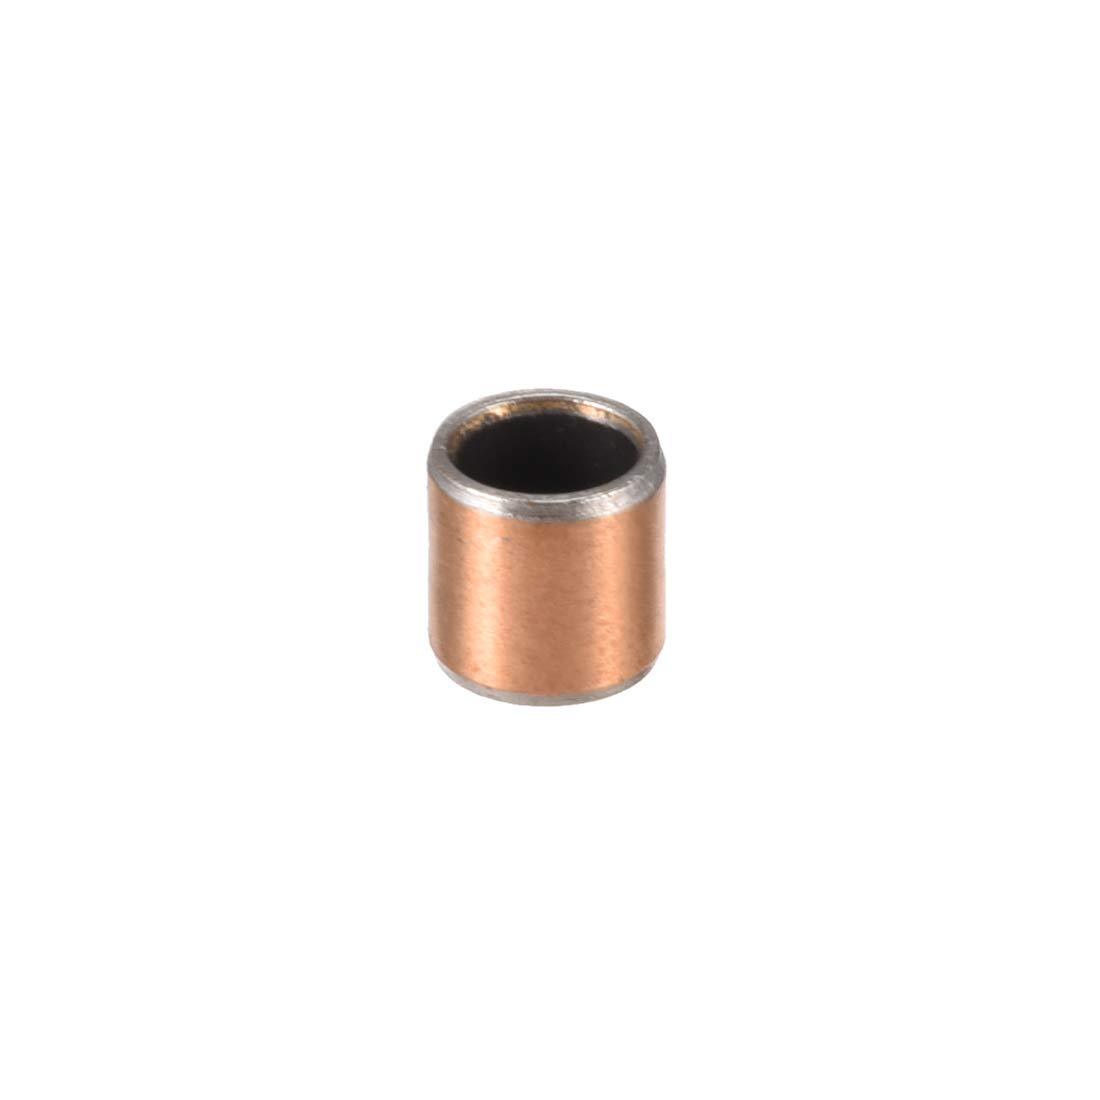 Pack of 10 uxcell Sleeve Bearing 6mm Bore x 8mm OD x 8mm Length Plain Bearings Wrapped Oilless Bushings